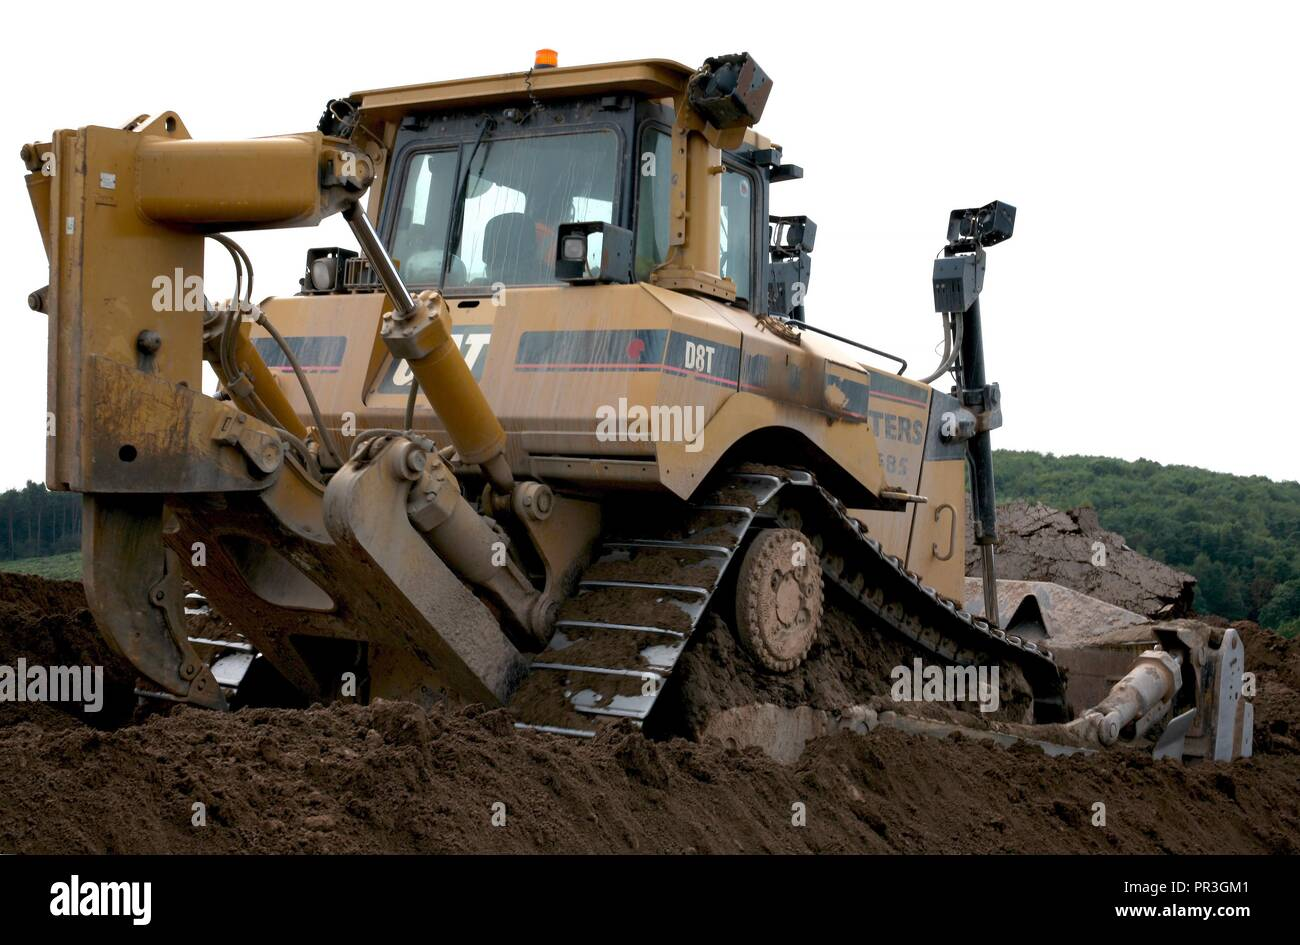 A Caterpillar D8T Bulldozer fitted with a semi universal